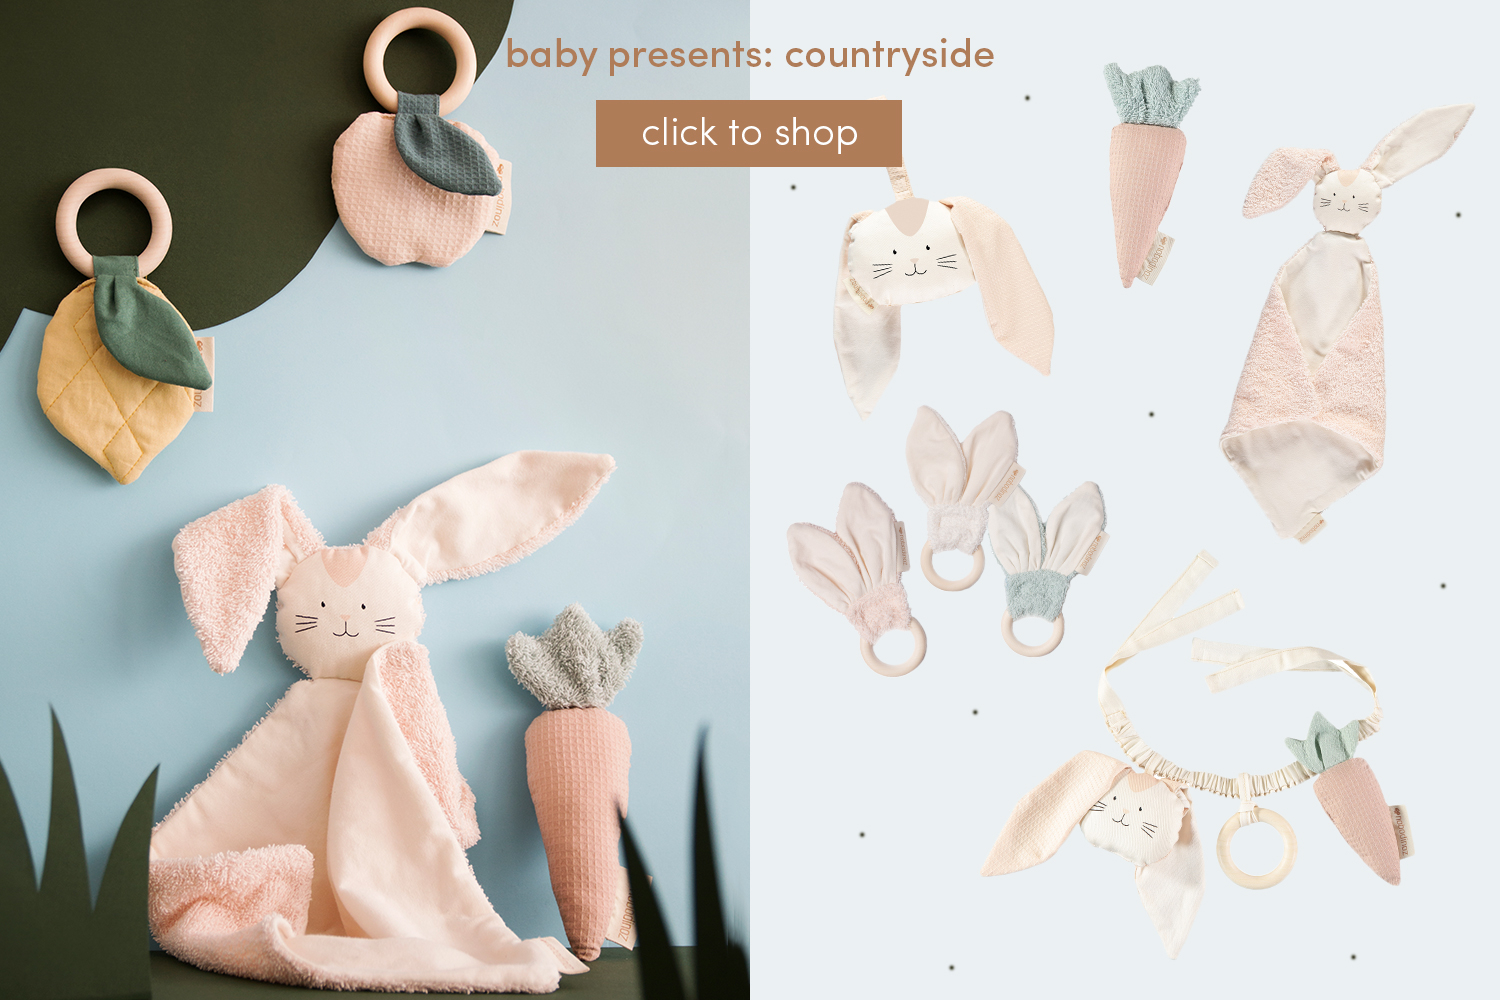 Baby presents: Countryside